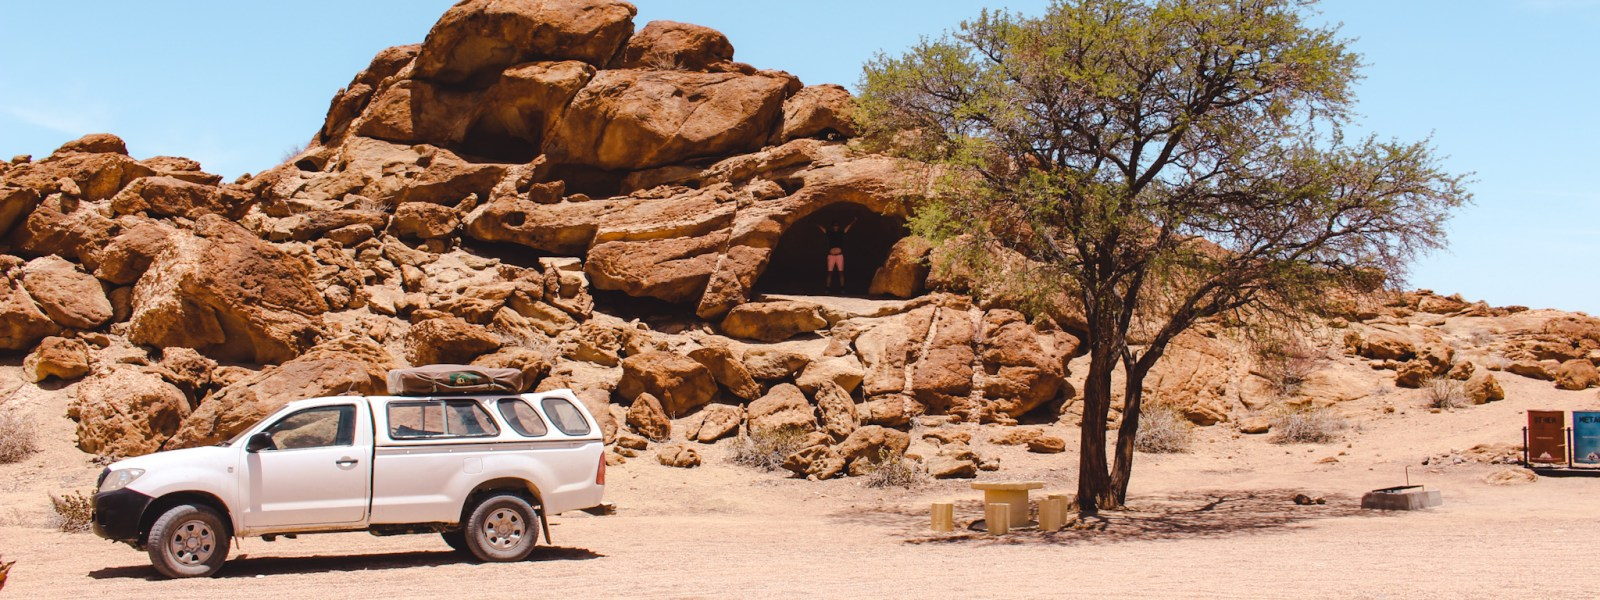 6x Namibia off the beaten track